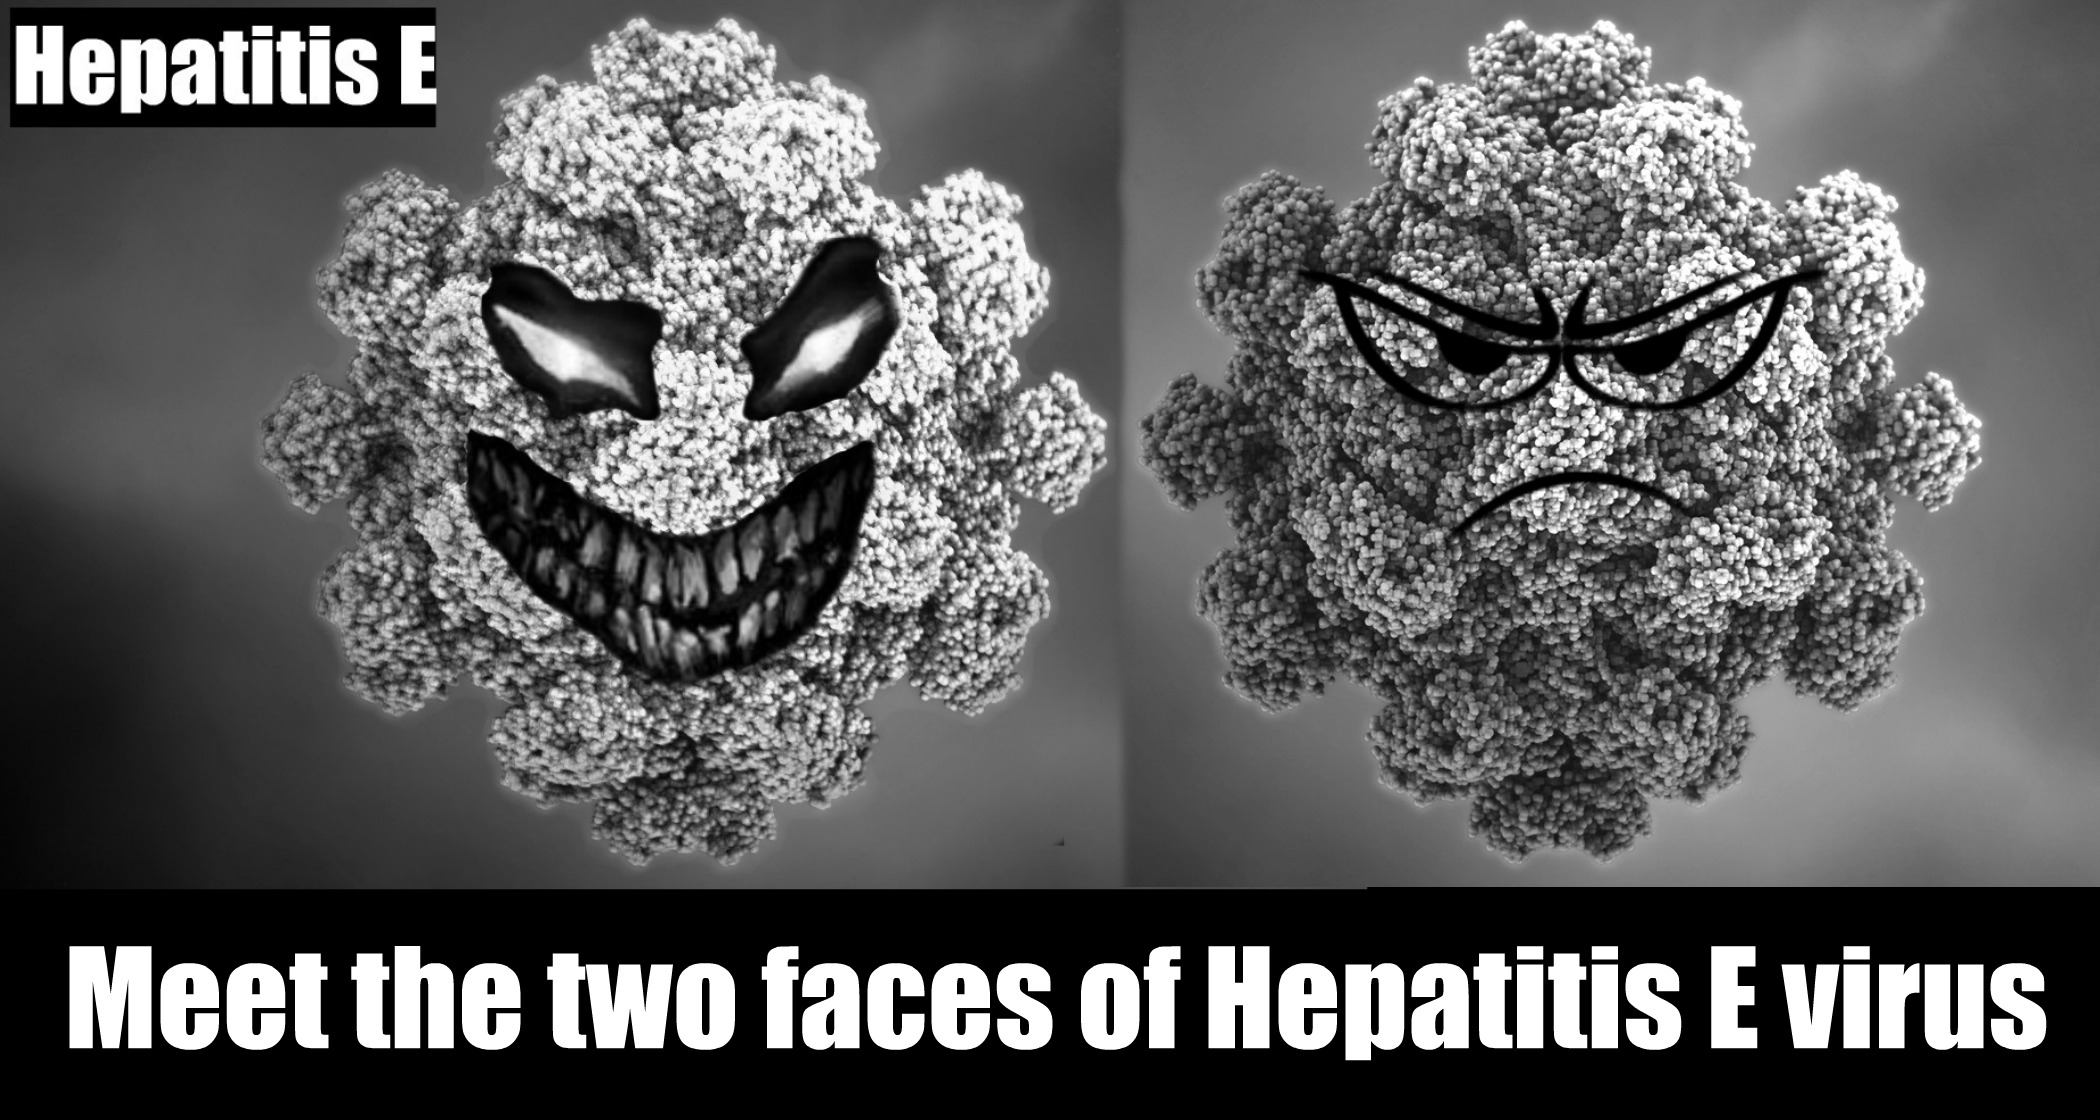 Hep E-the 2 faces